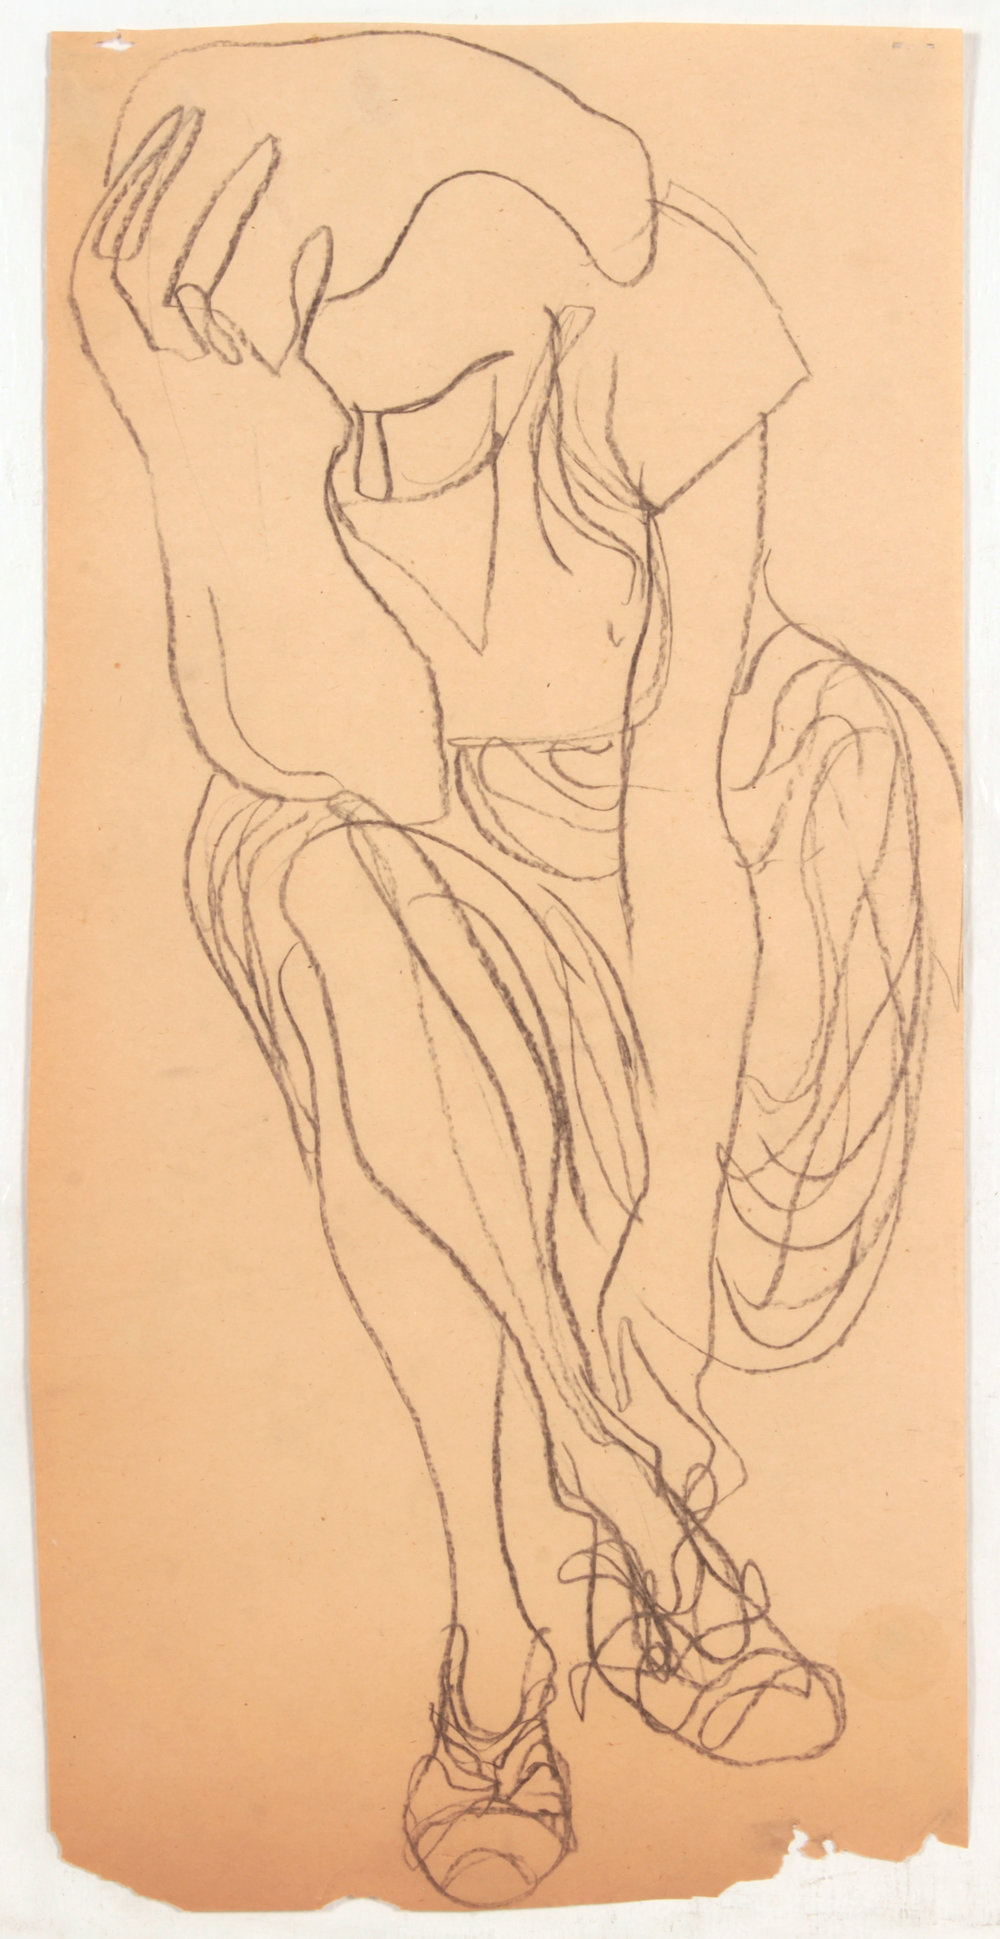 40. 1947-48 c, NT (Lady Holding Head and Fixing Shoe), Charcoal on Paper, 22x11, PPS 1437.JPG